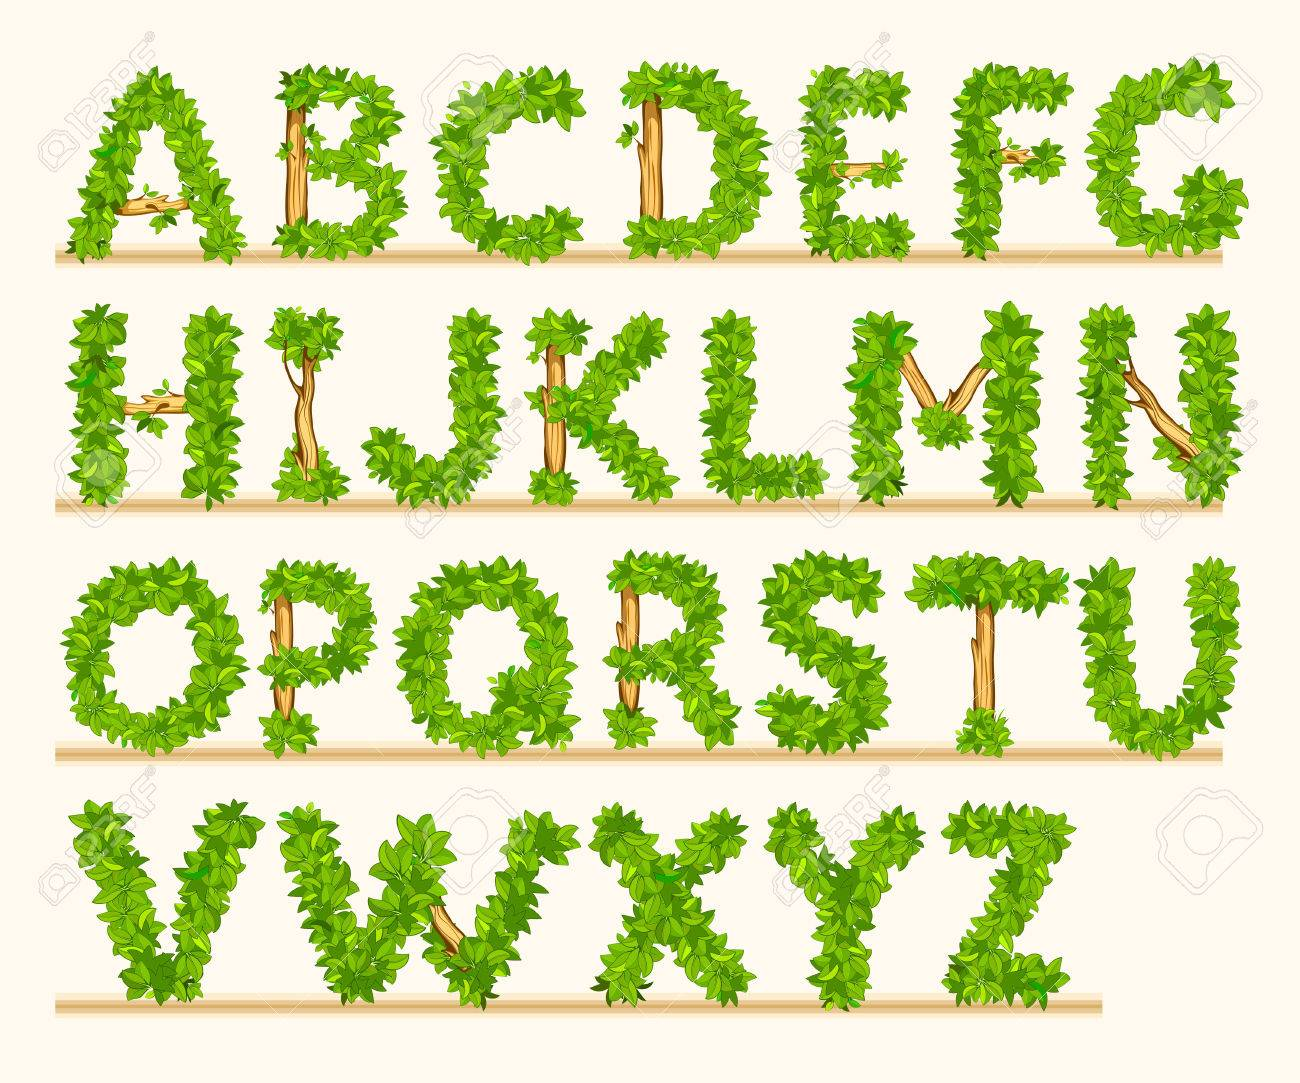 Stylized font of green leaves and branches - 36565184